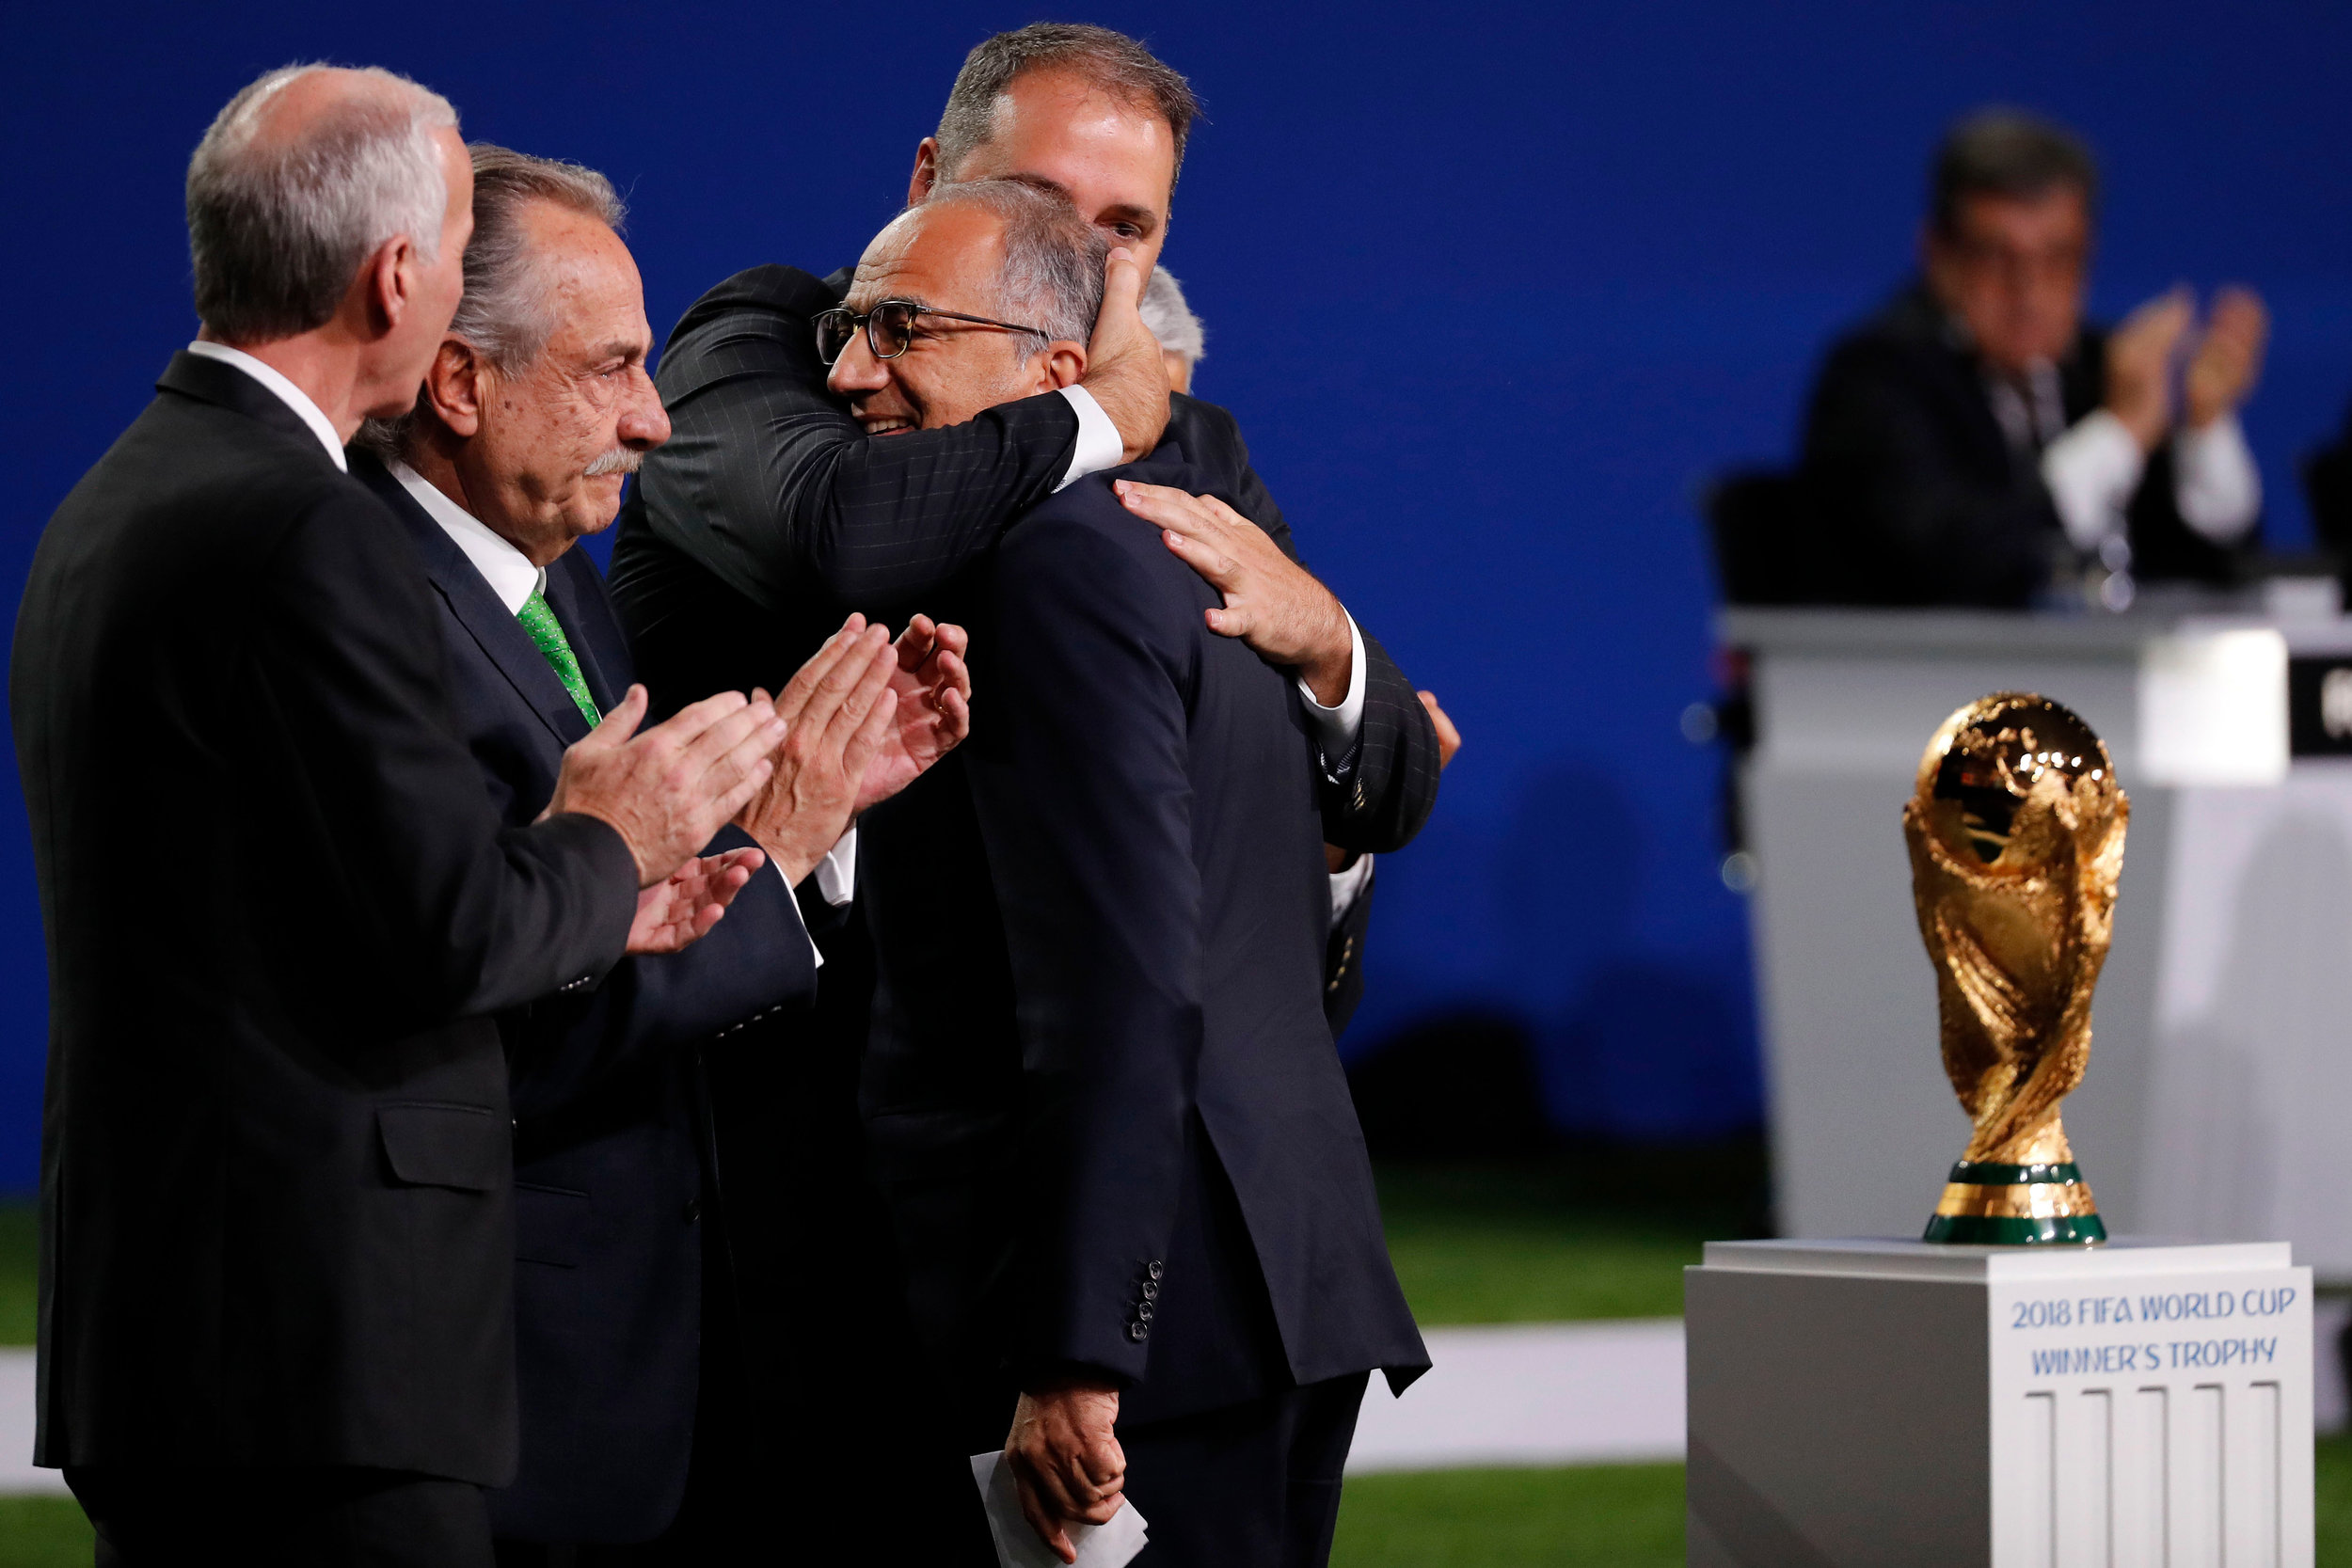 The leaders of professional football in Mexico, Canada, and the USA embrace following their bid for the 2026 World Cup being granted.